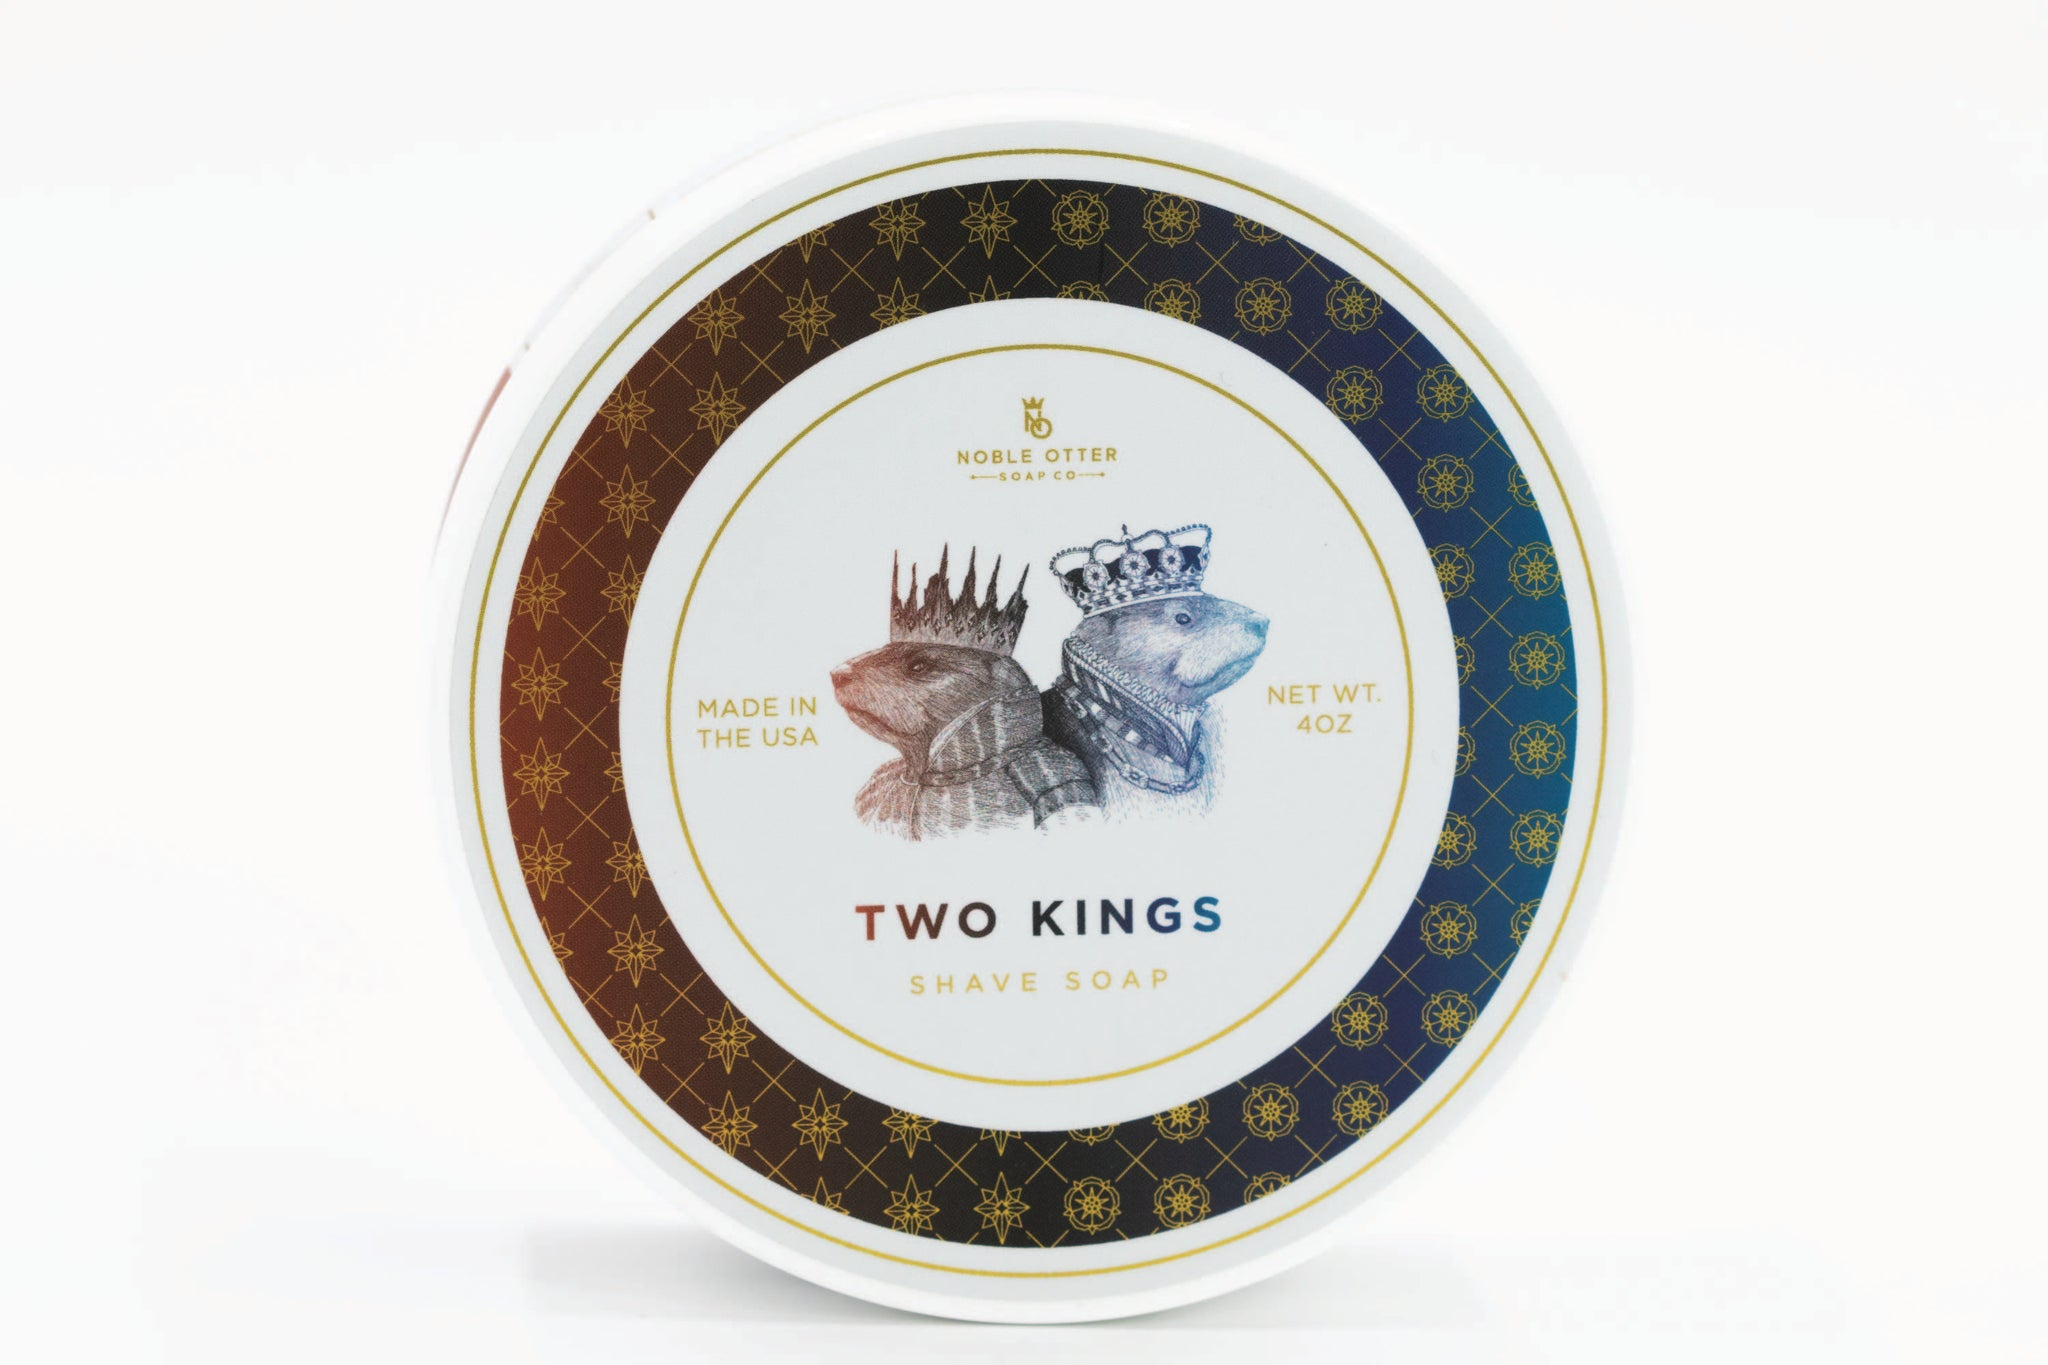 Noble Otter 'Two Kings' Luxury Tallow Shaving Soap